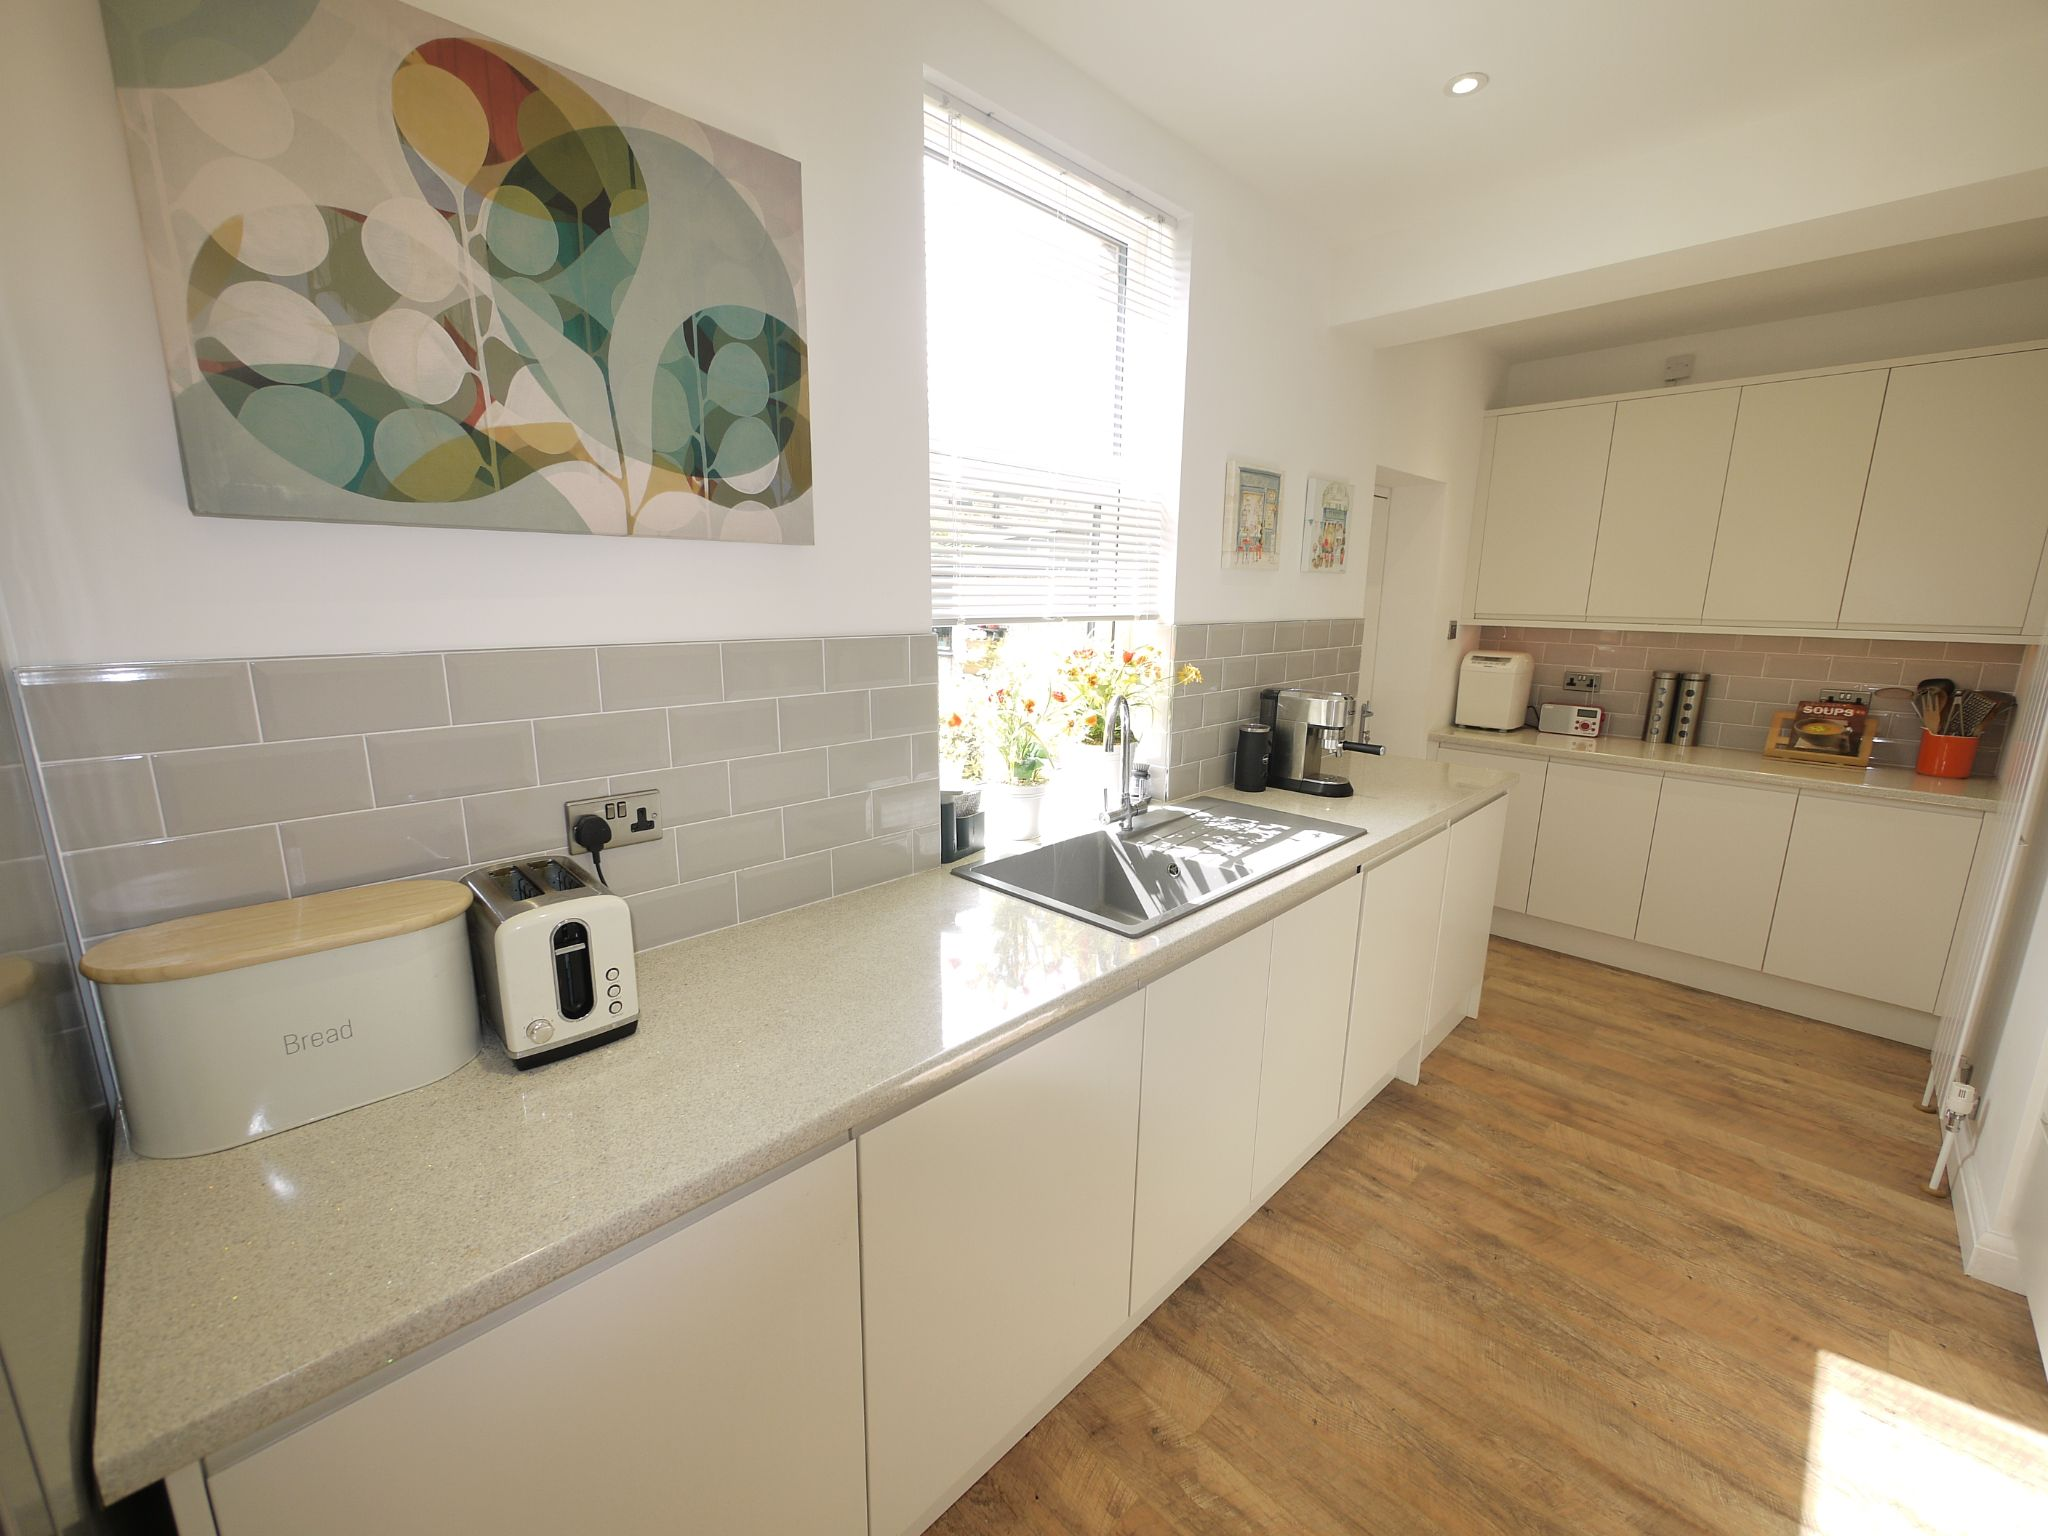 4 bedroom detached house SSTC in Halifax - Photograph 5.